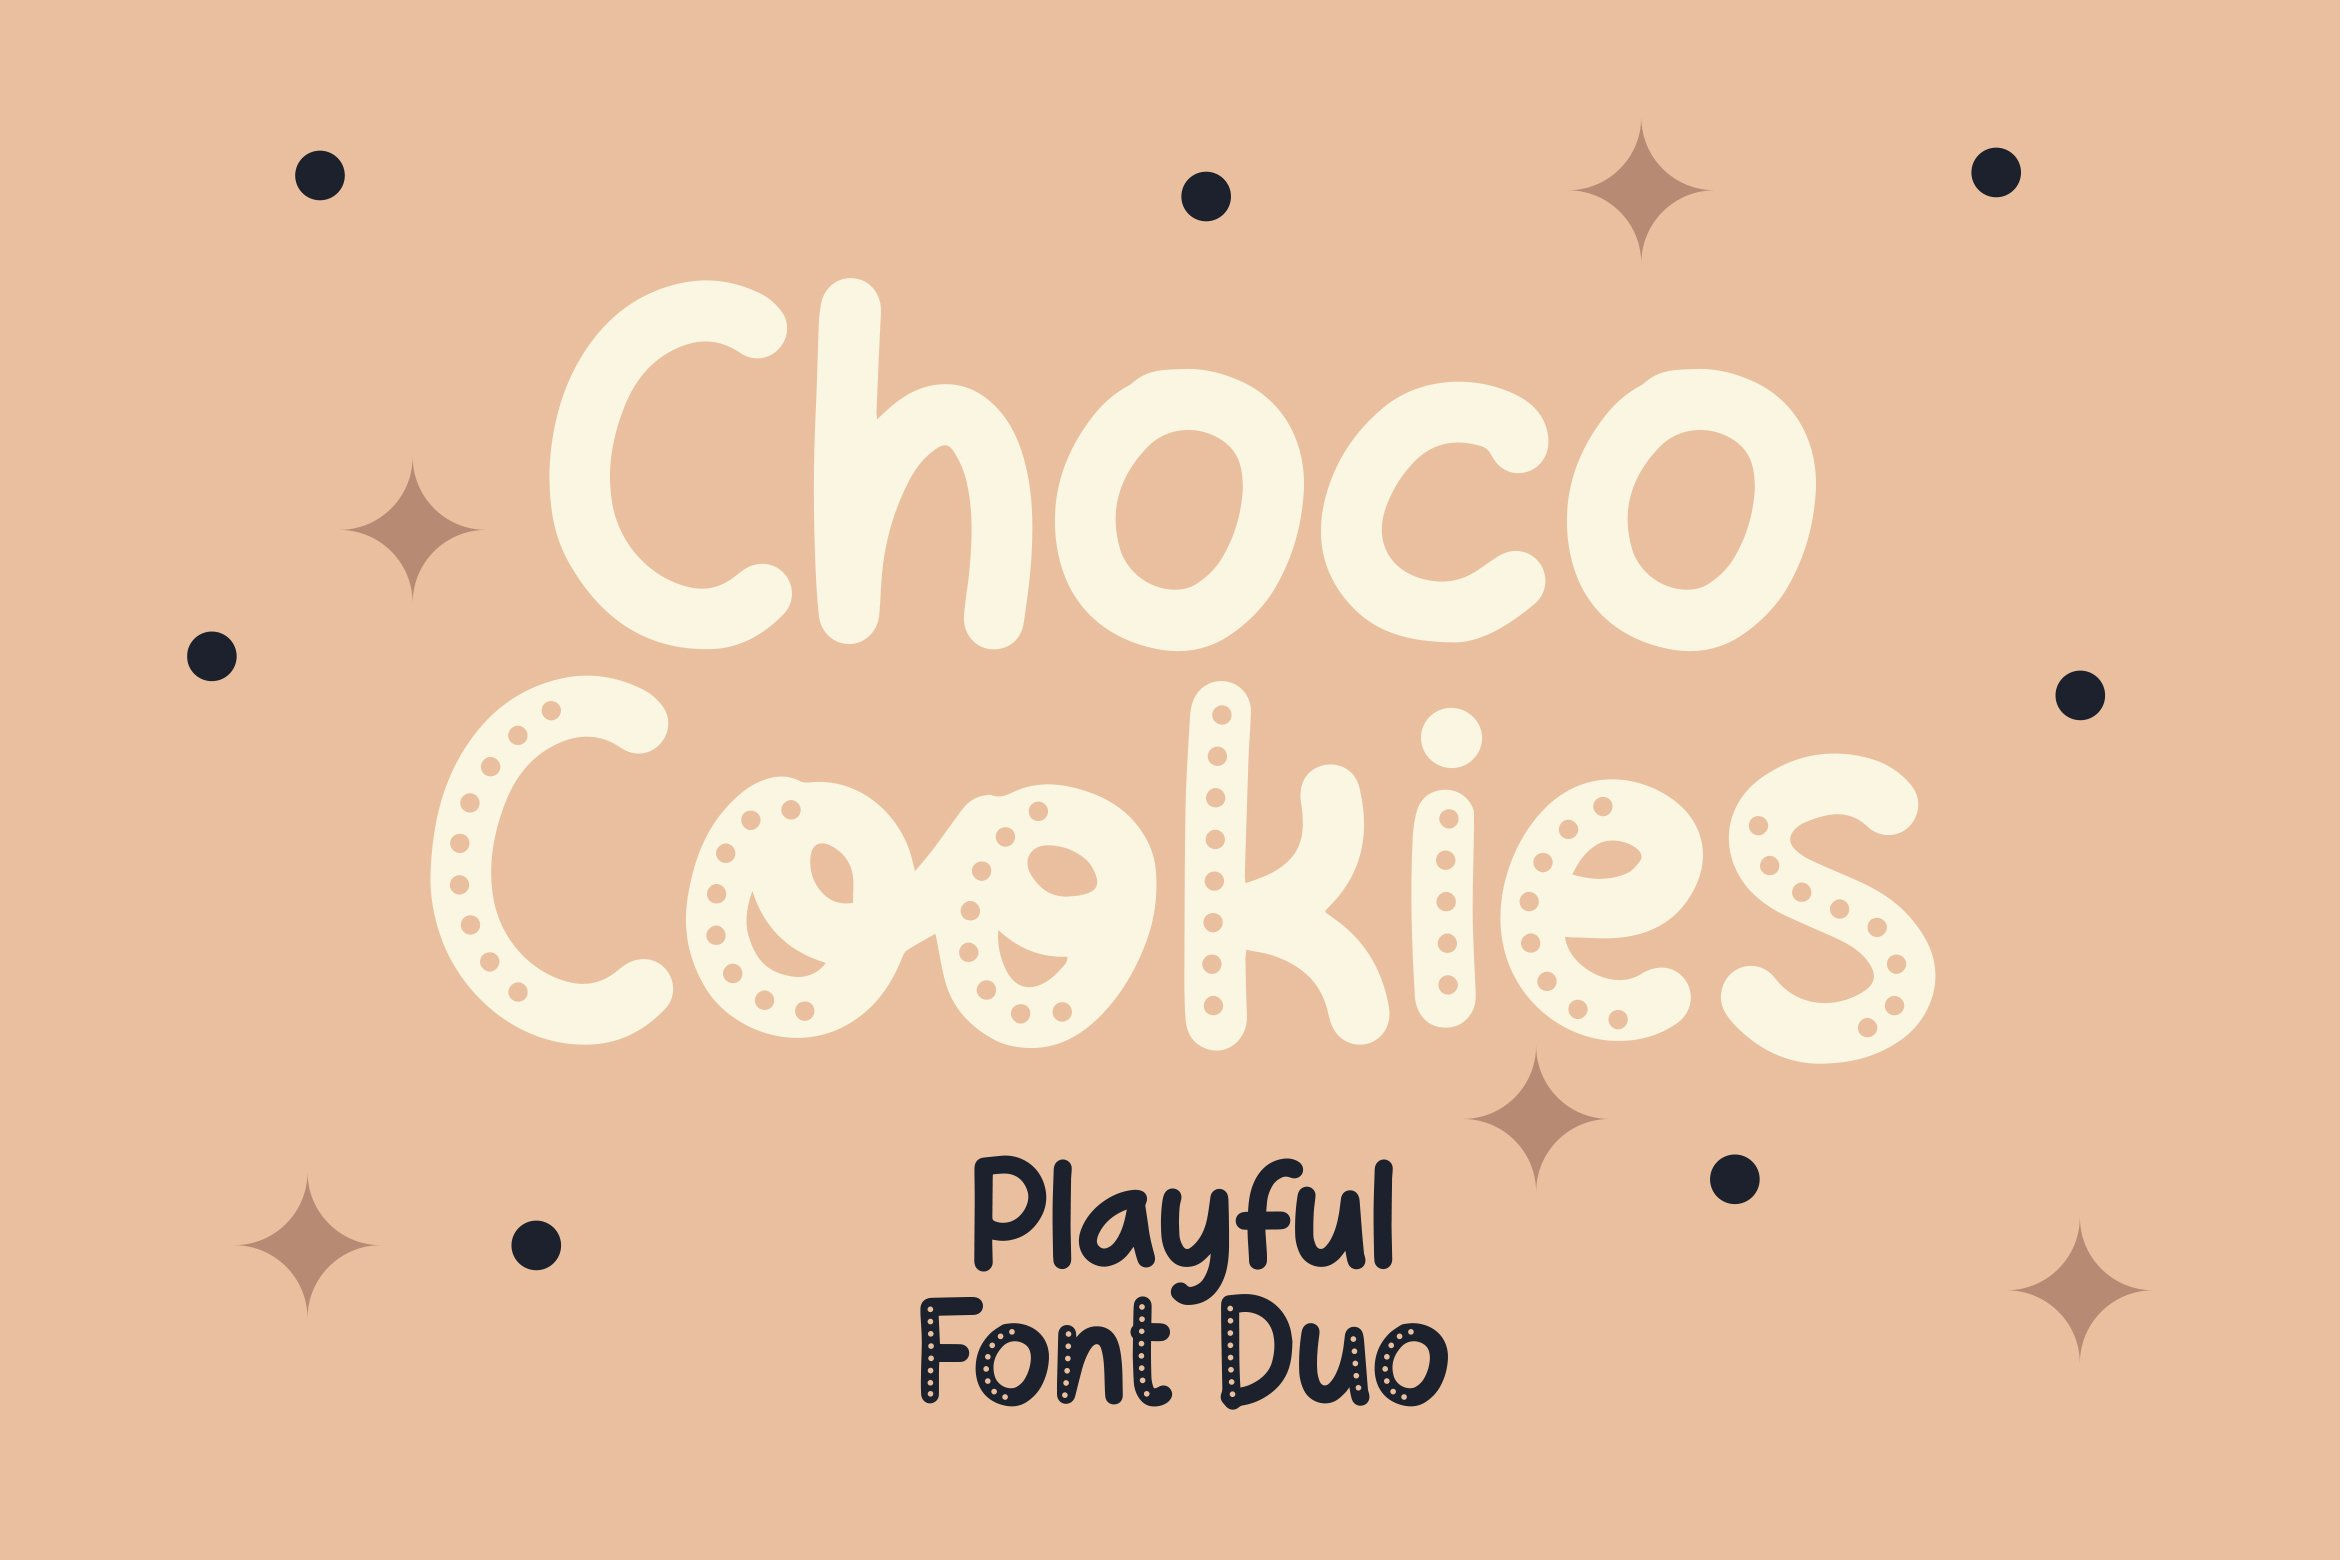 Choco Cookie - Playful Duo Font example image 1